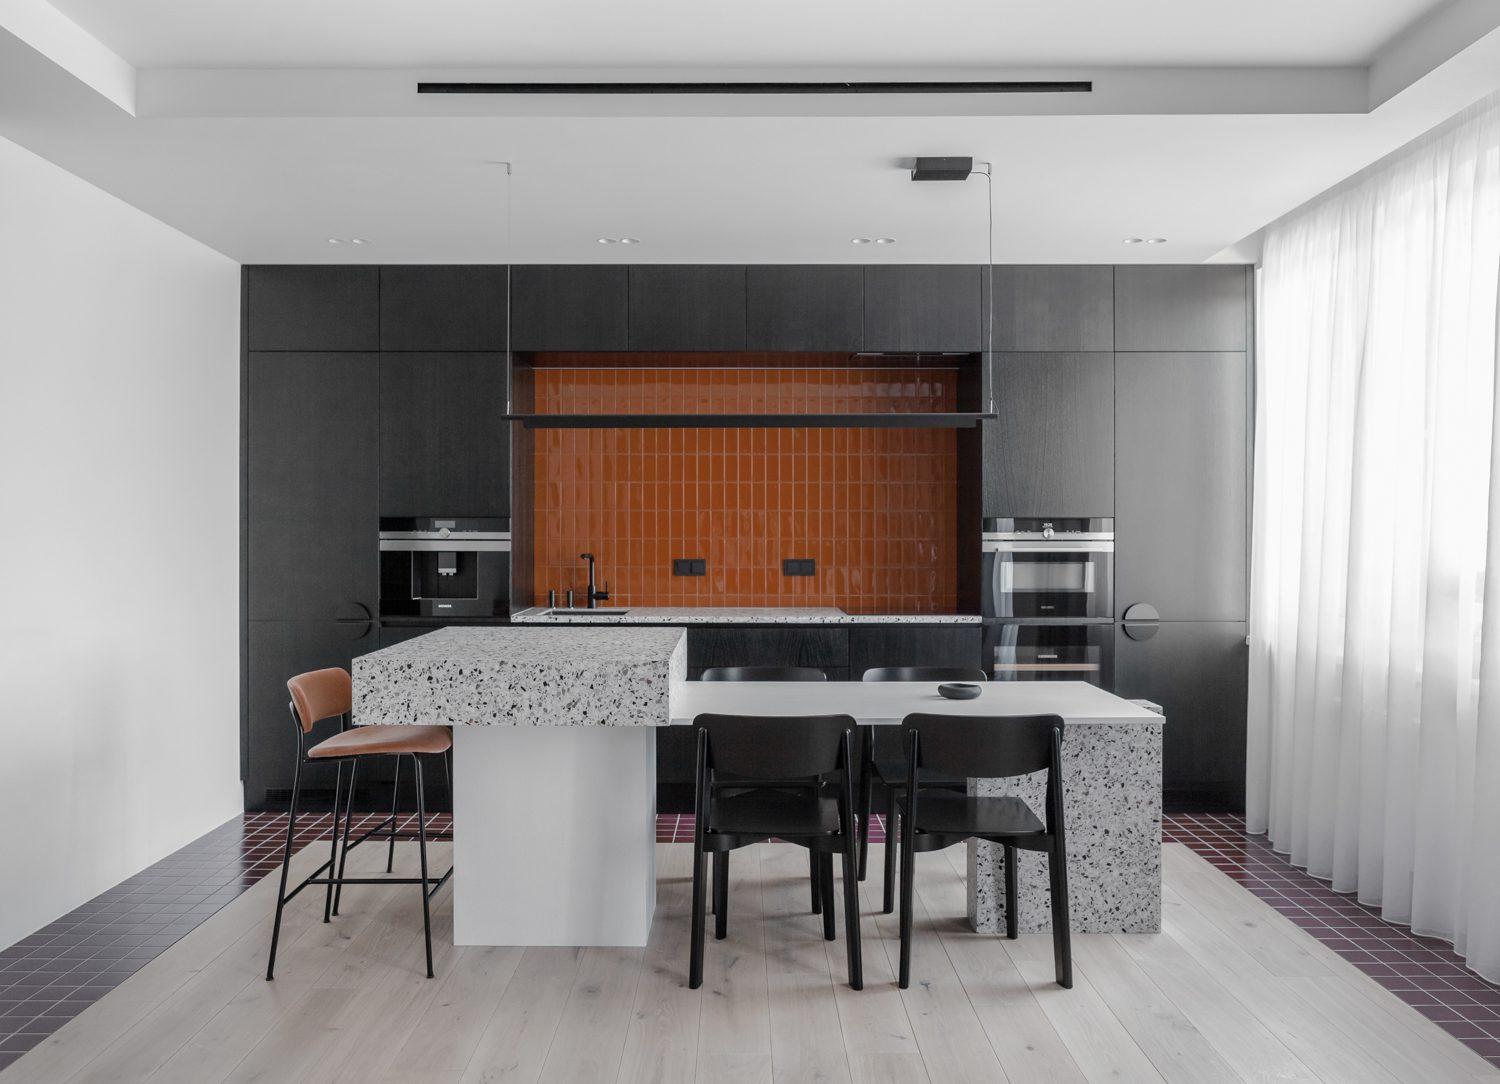 The wine tiles in the kitchen are mirrored in the living area, but in an inverse pattern.